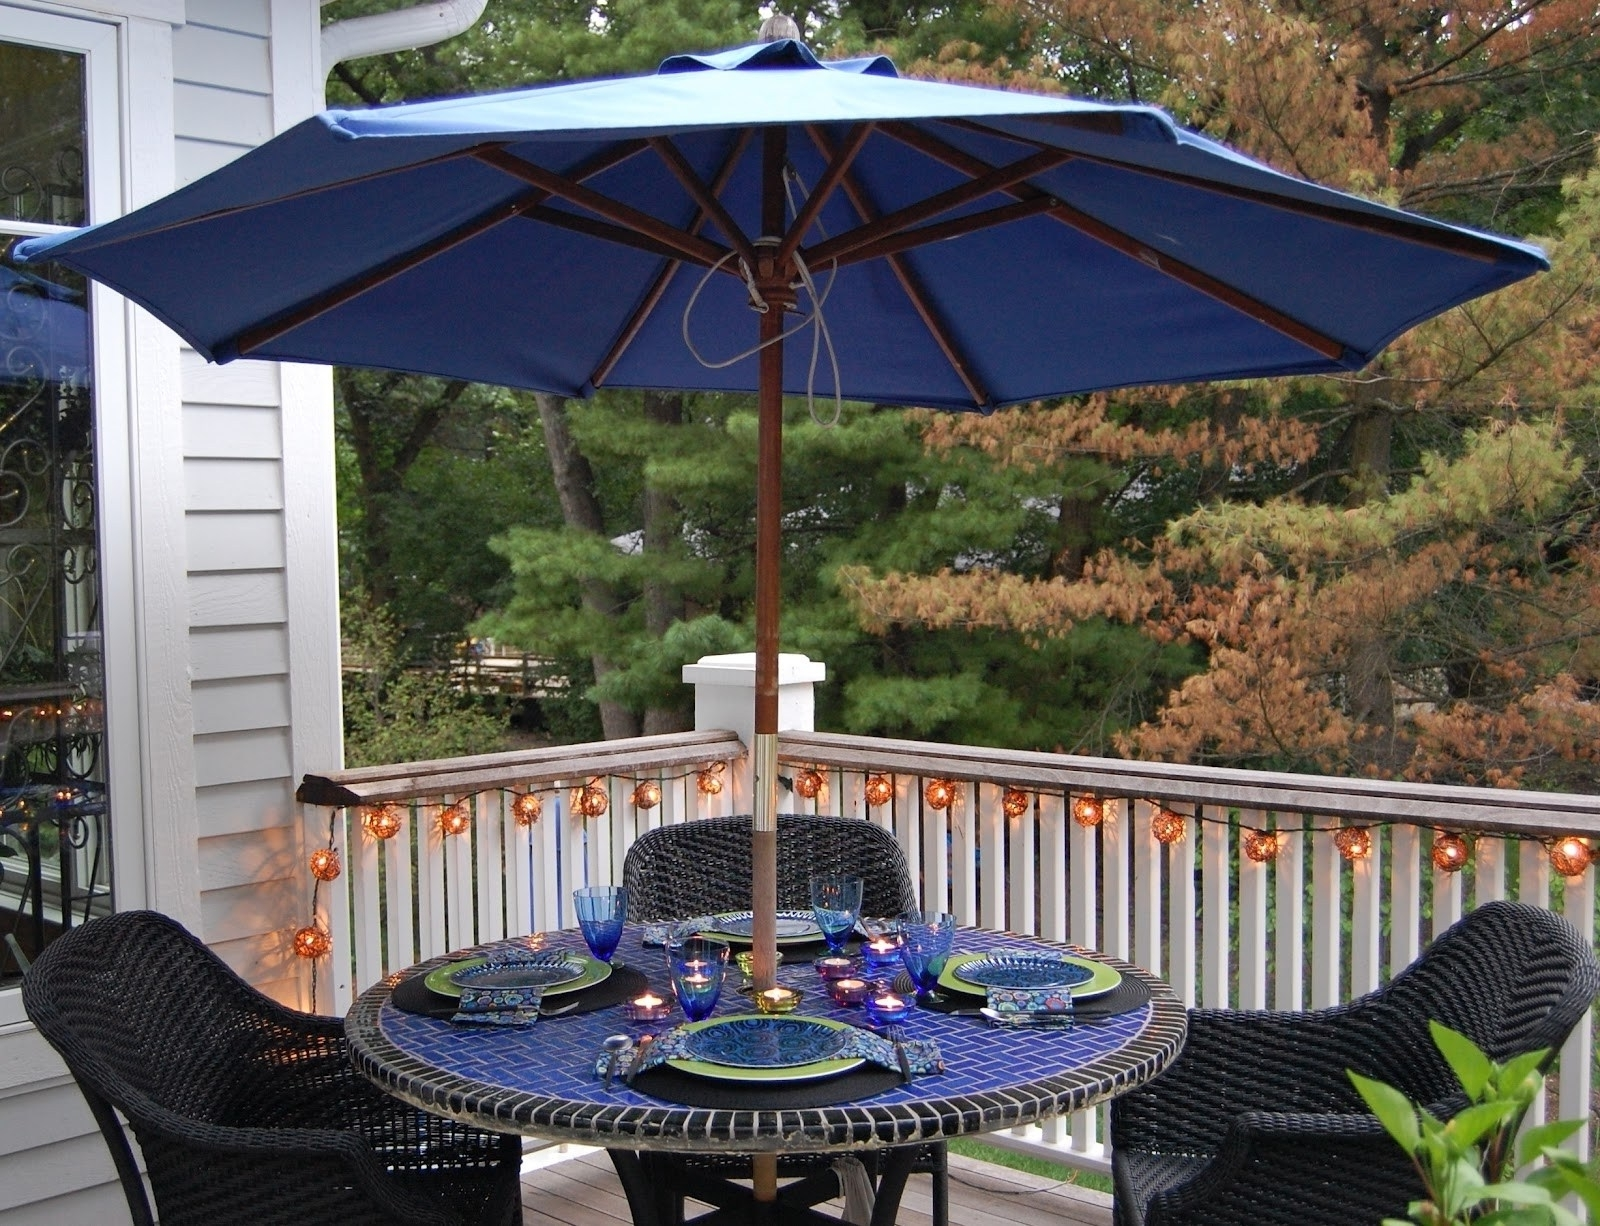 Best And Newest Small Patio Umbrellas Regarding Patio: Amazing Small Patio Table With Umbrella Outdoor Furniture (Gallery 14 of 20)